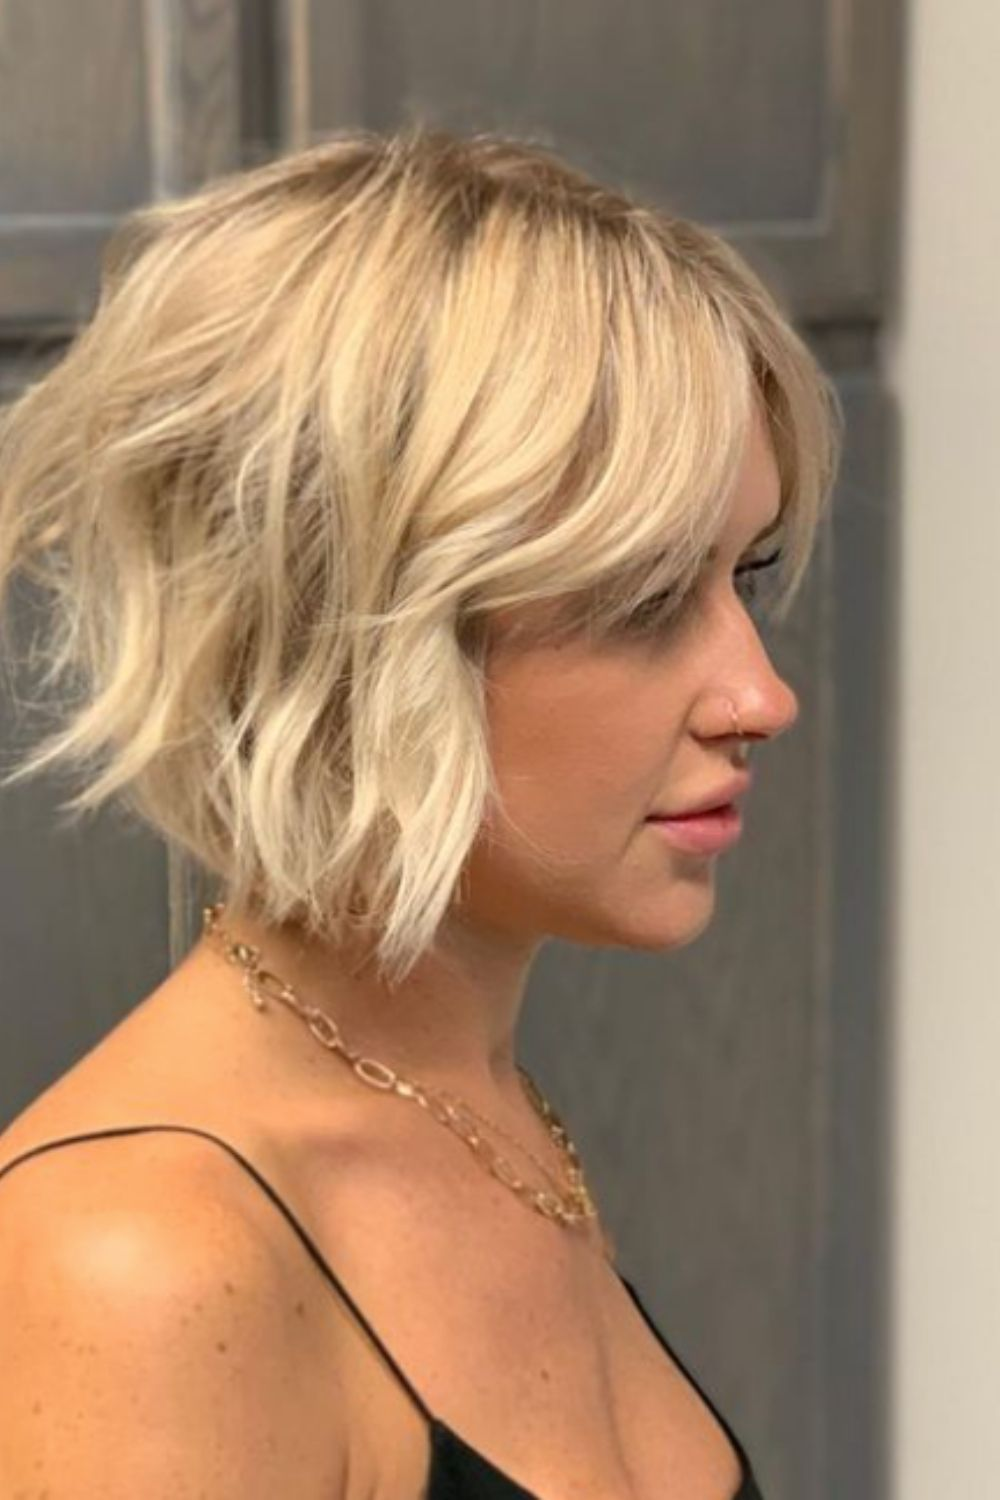 What is an stacked inverted bob haircut?